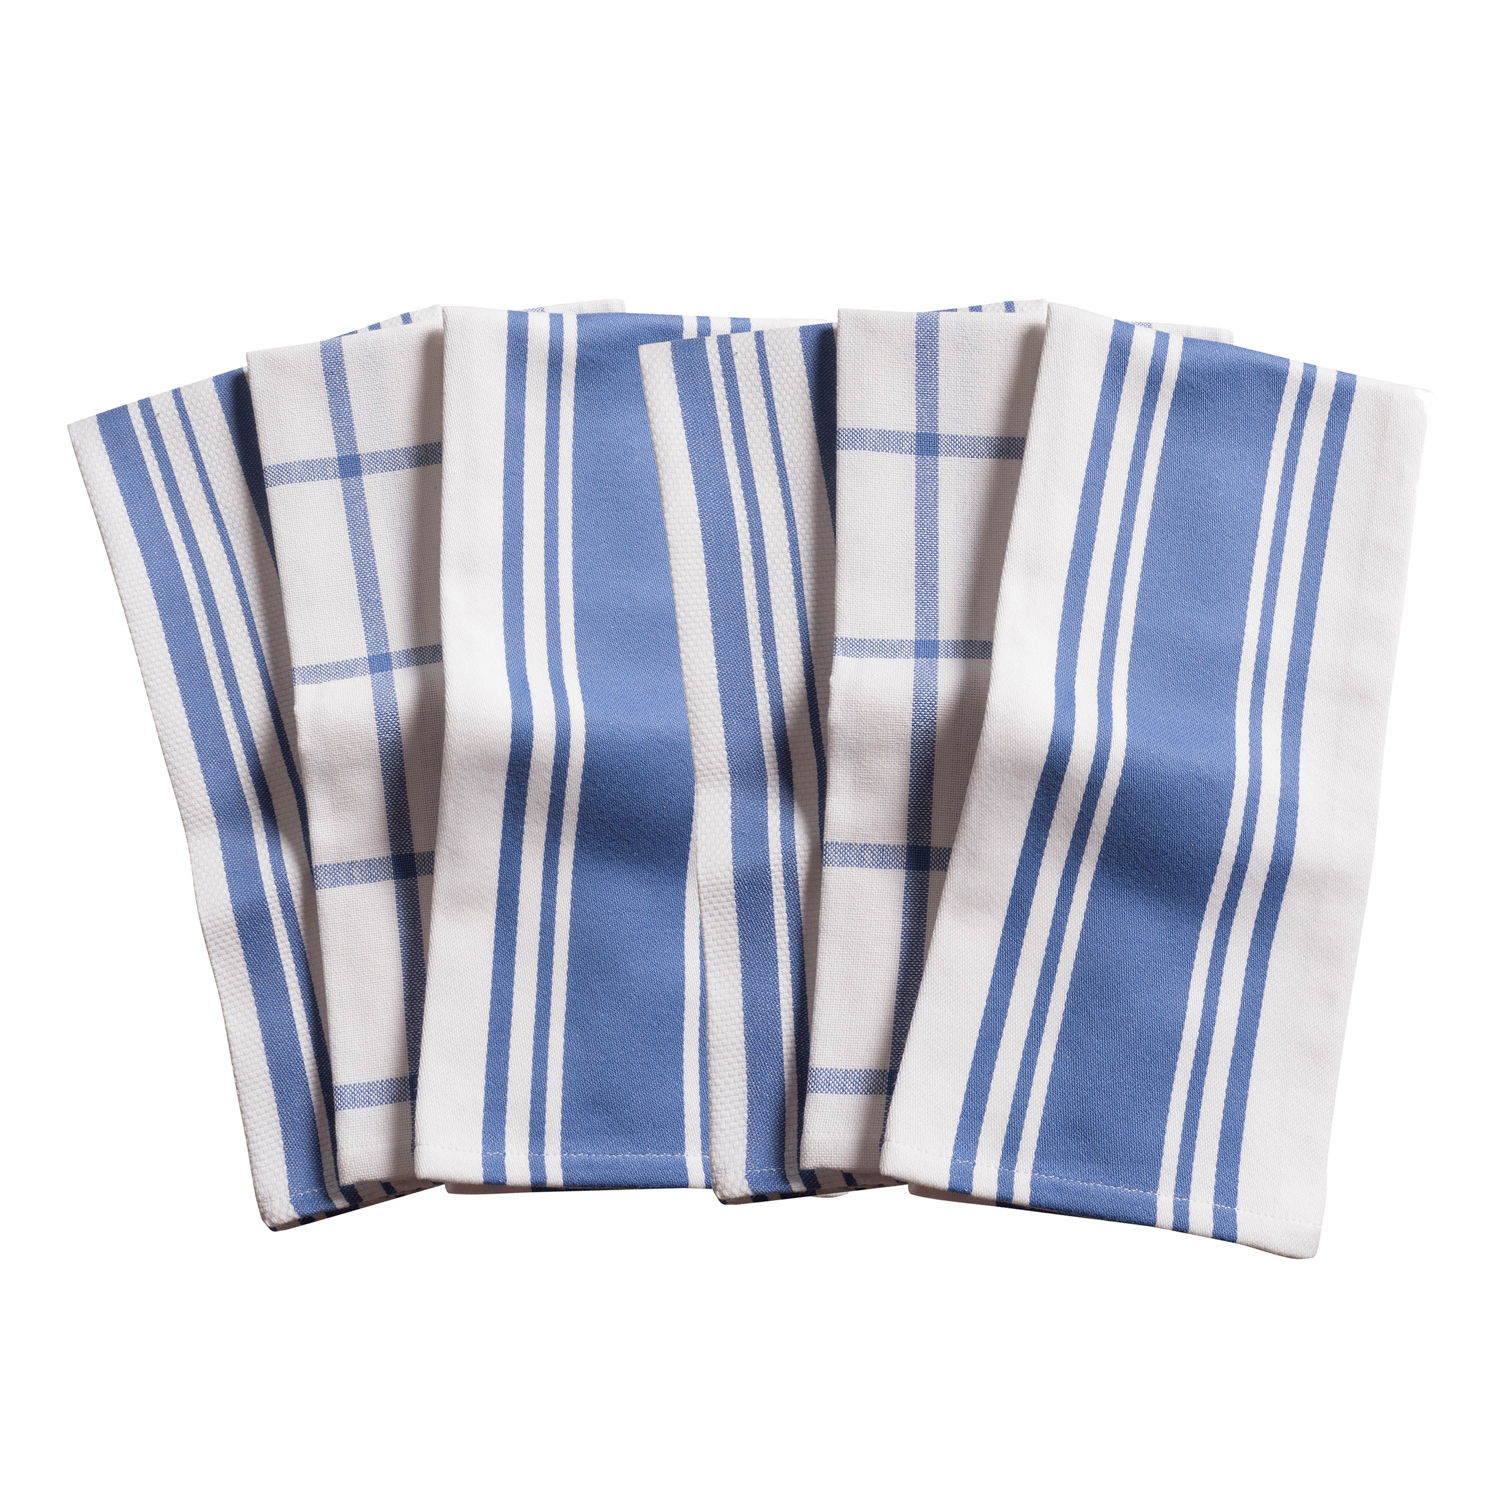 Periwinkle All Purpose Kitchen Towels Set of 6